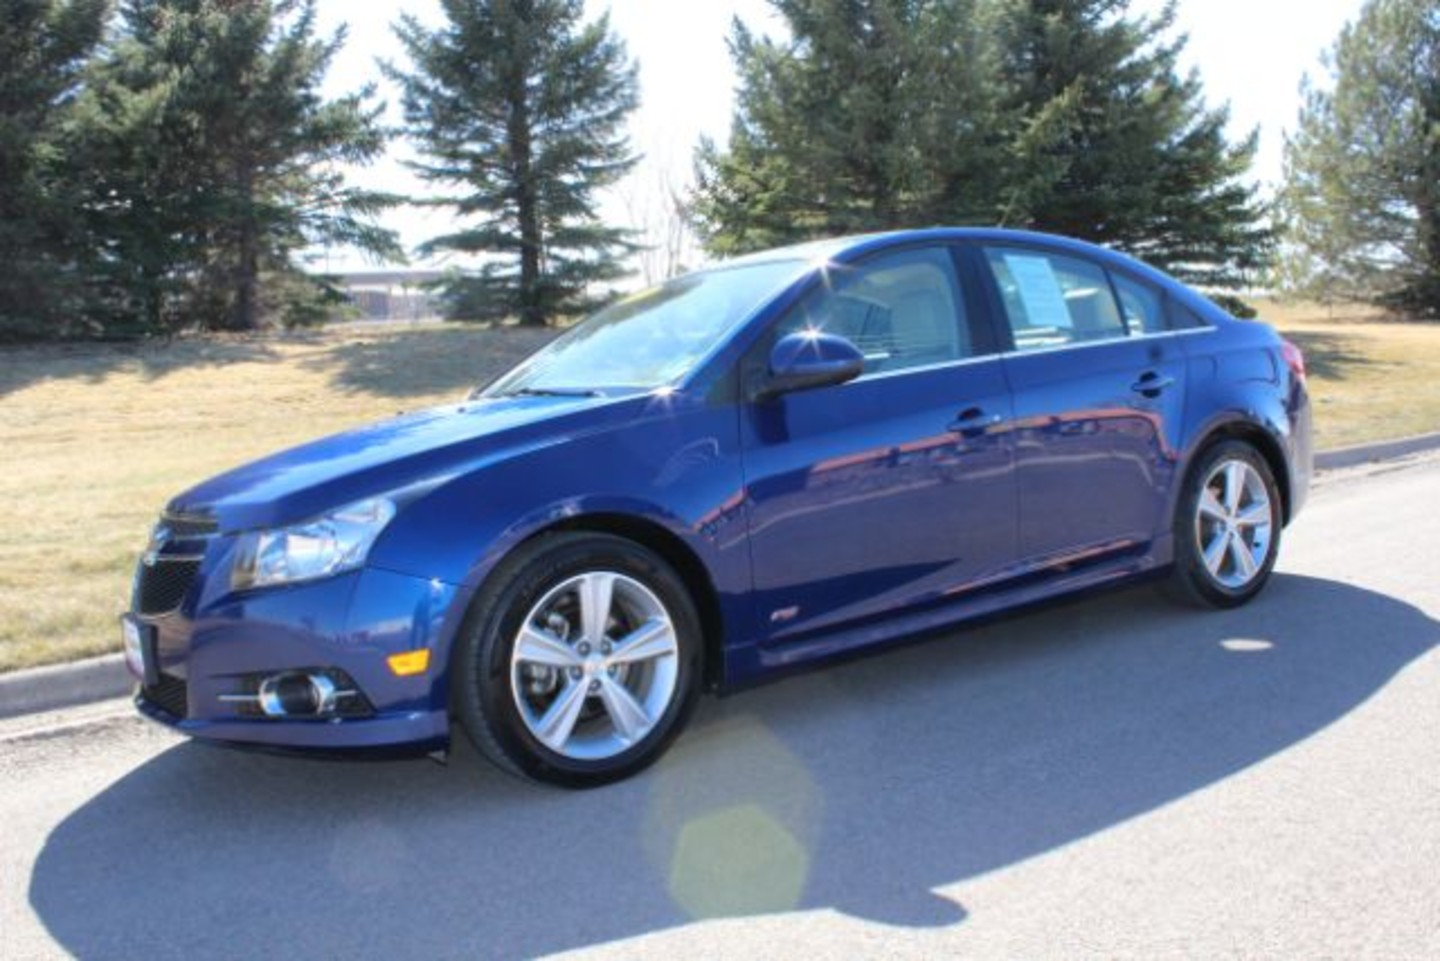 2013 chevrolet cruze specs and prices autoblog for Bleskin motors great falls mt